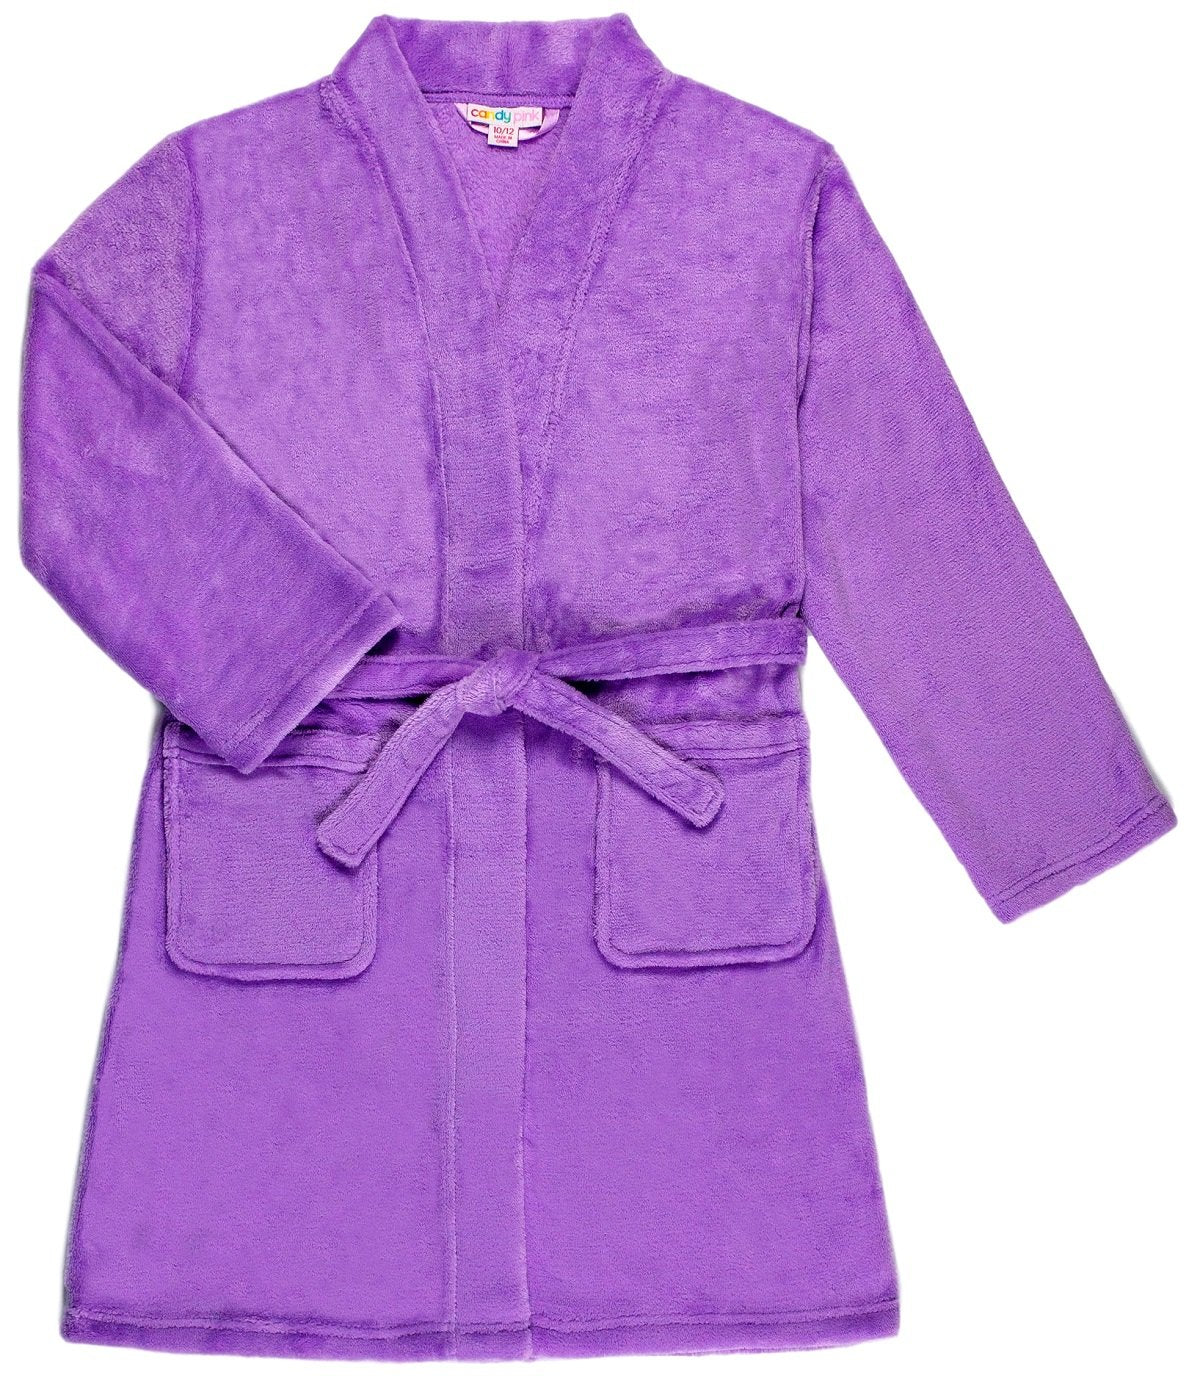 Candy Pink Solid Color Fleece Robe